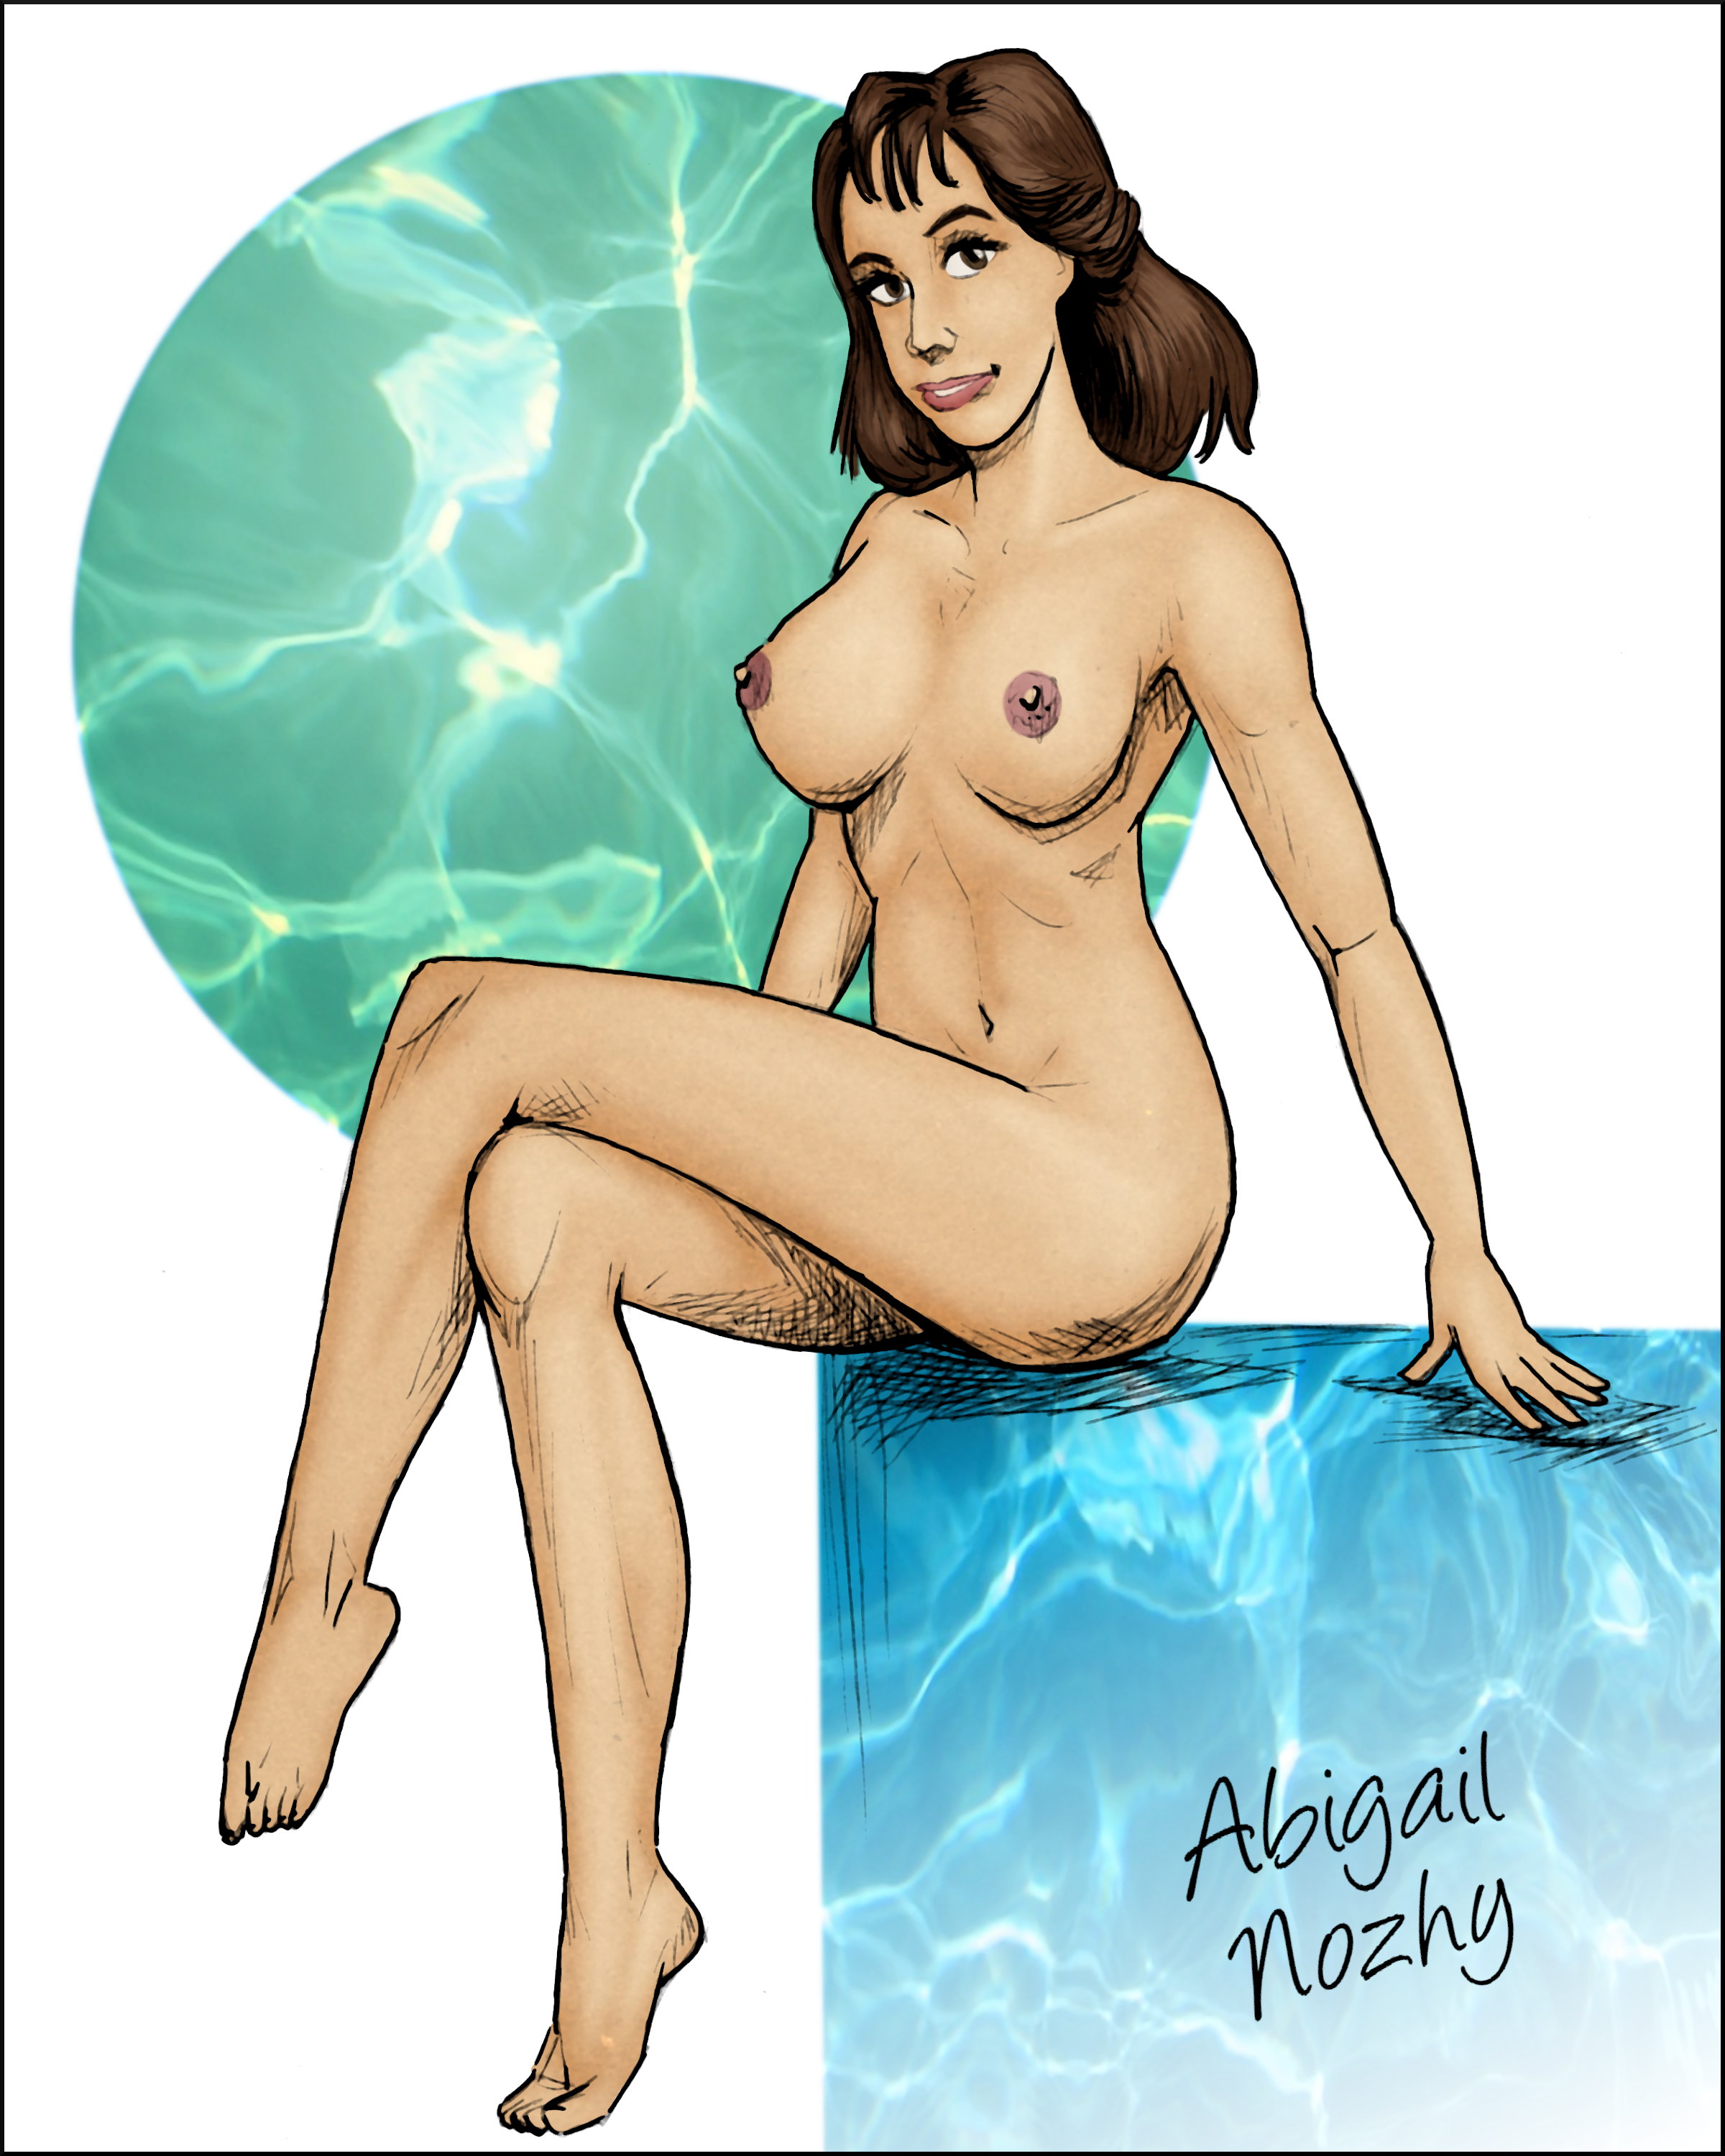 Pinup of Abigail Nozhy